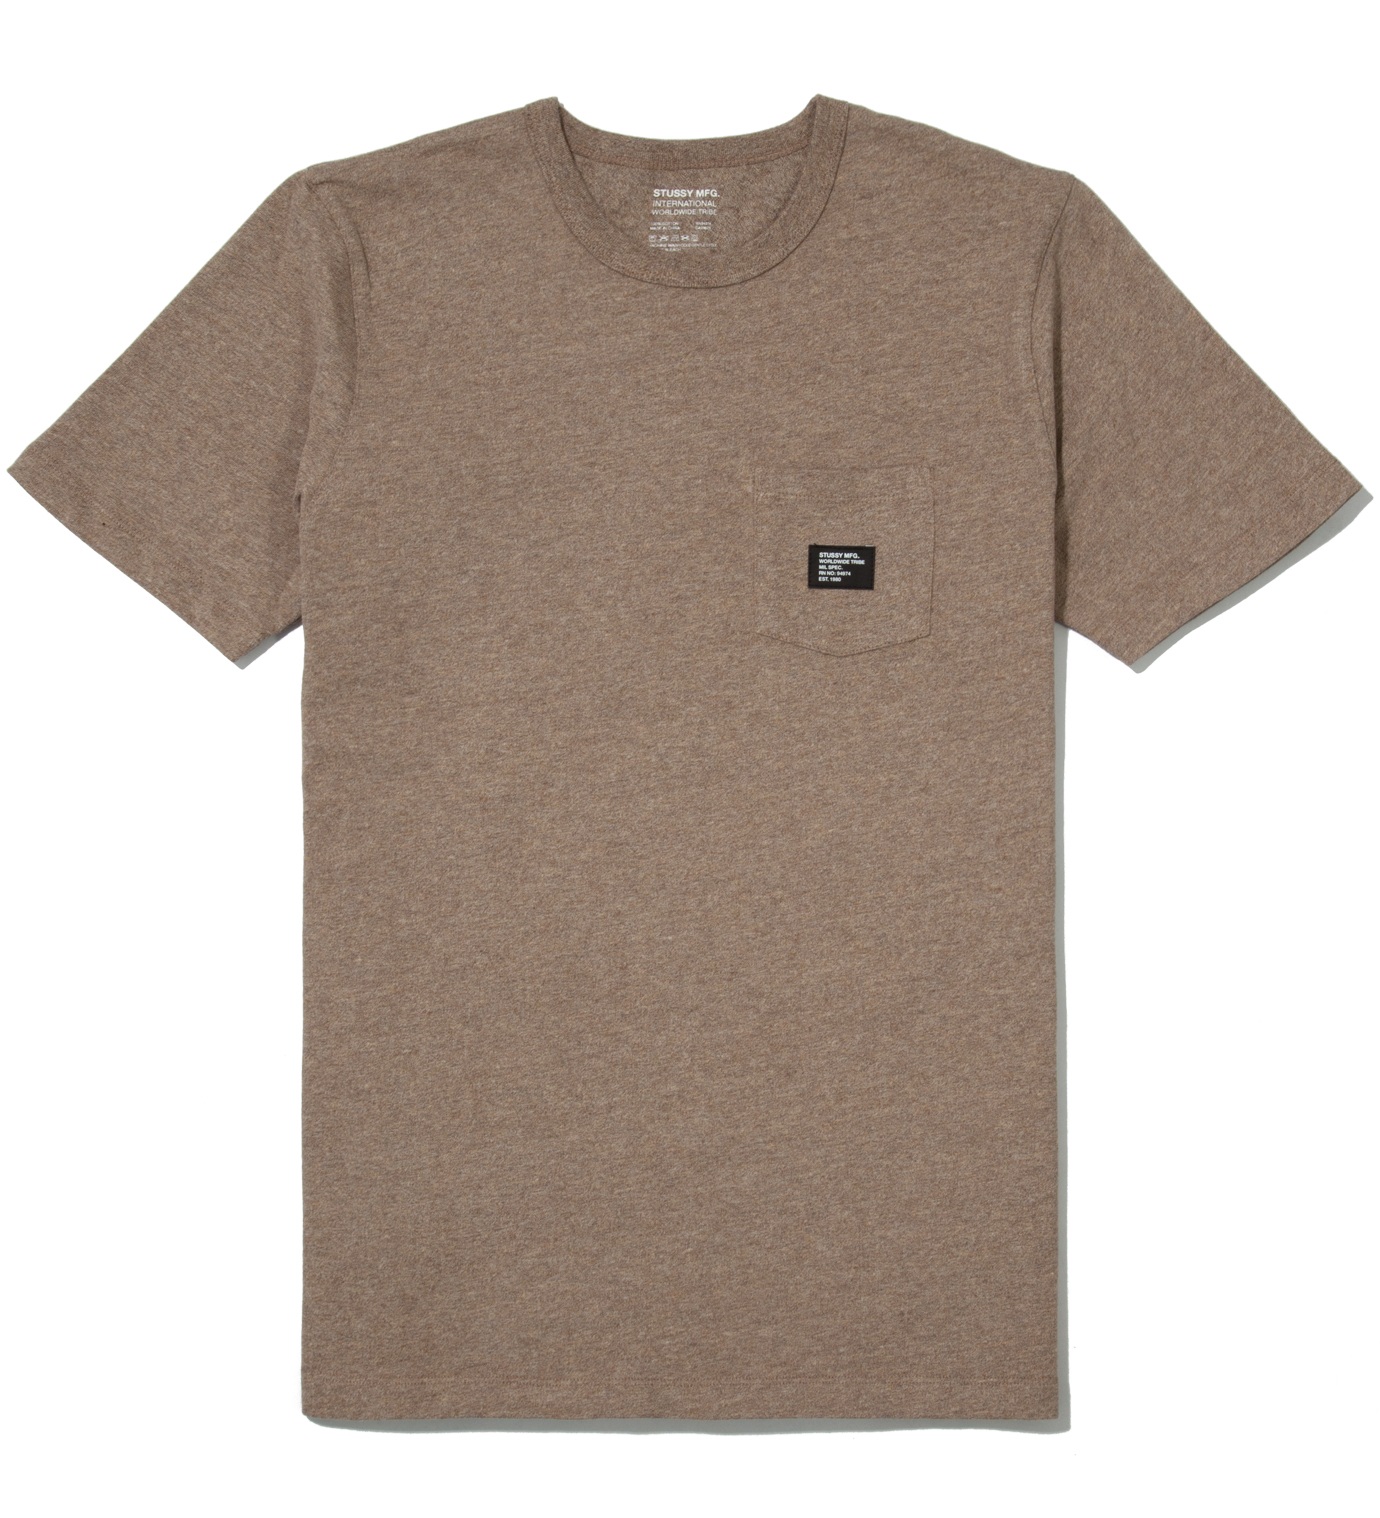 Stussy Brown Heather Basic Issue Crew T-Shirt